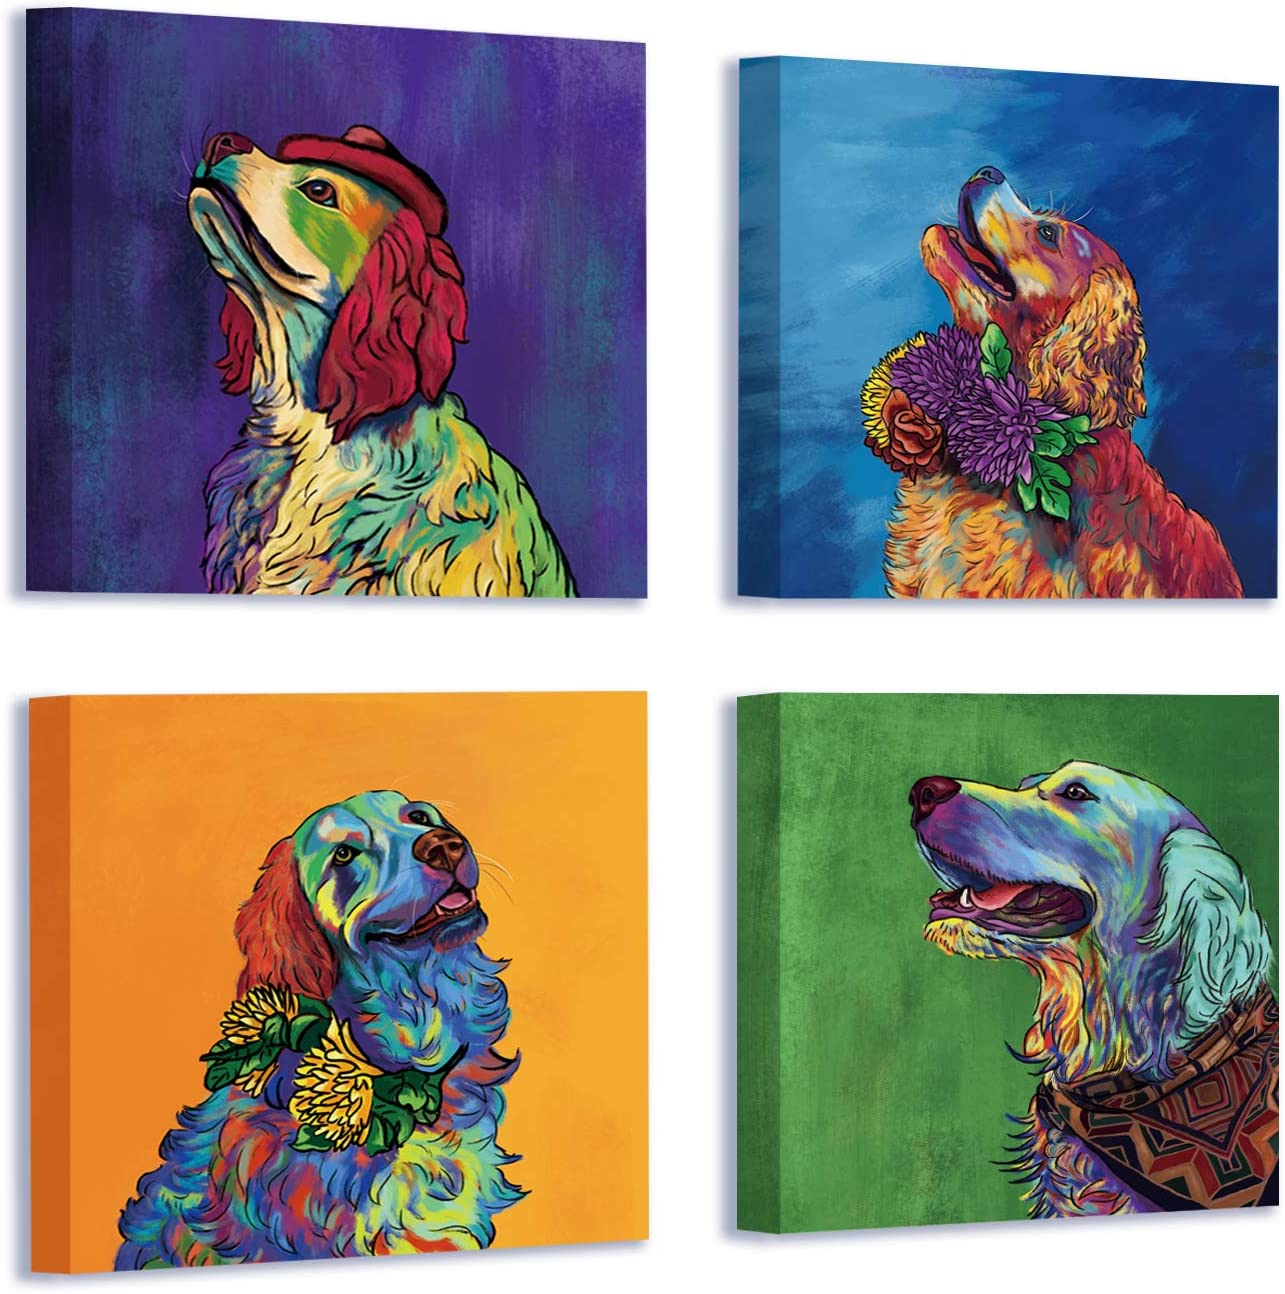 Canvas Wall Art Framed for Living Room Bedroom Colorful Dogs Painting Wall Decor Pictures Lightweight Ready to Hang 12x12 inch/piece, 4 Panels